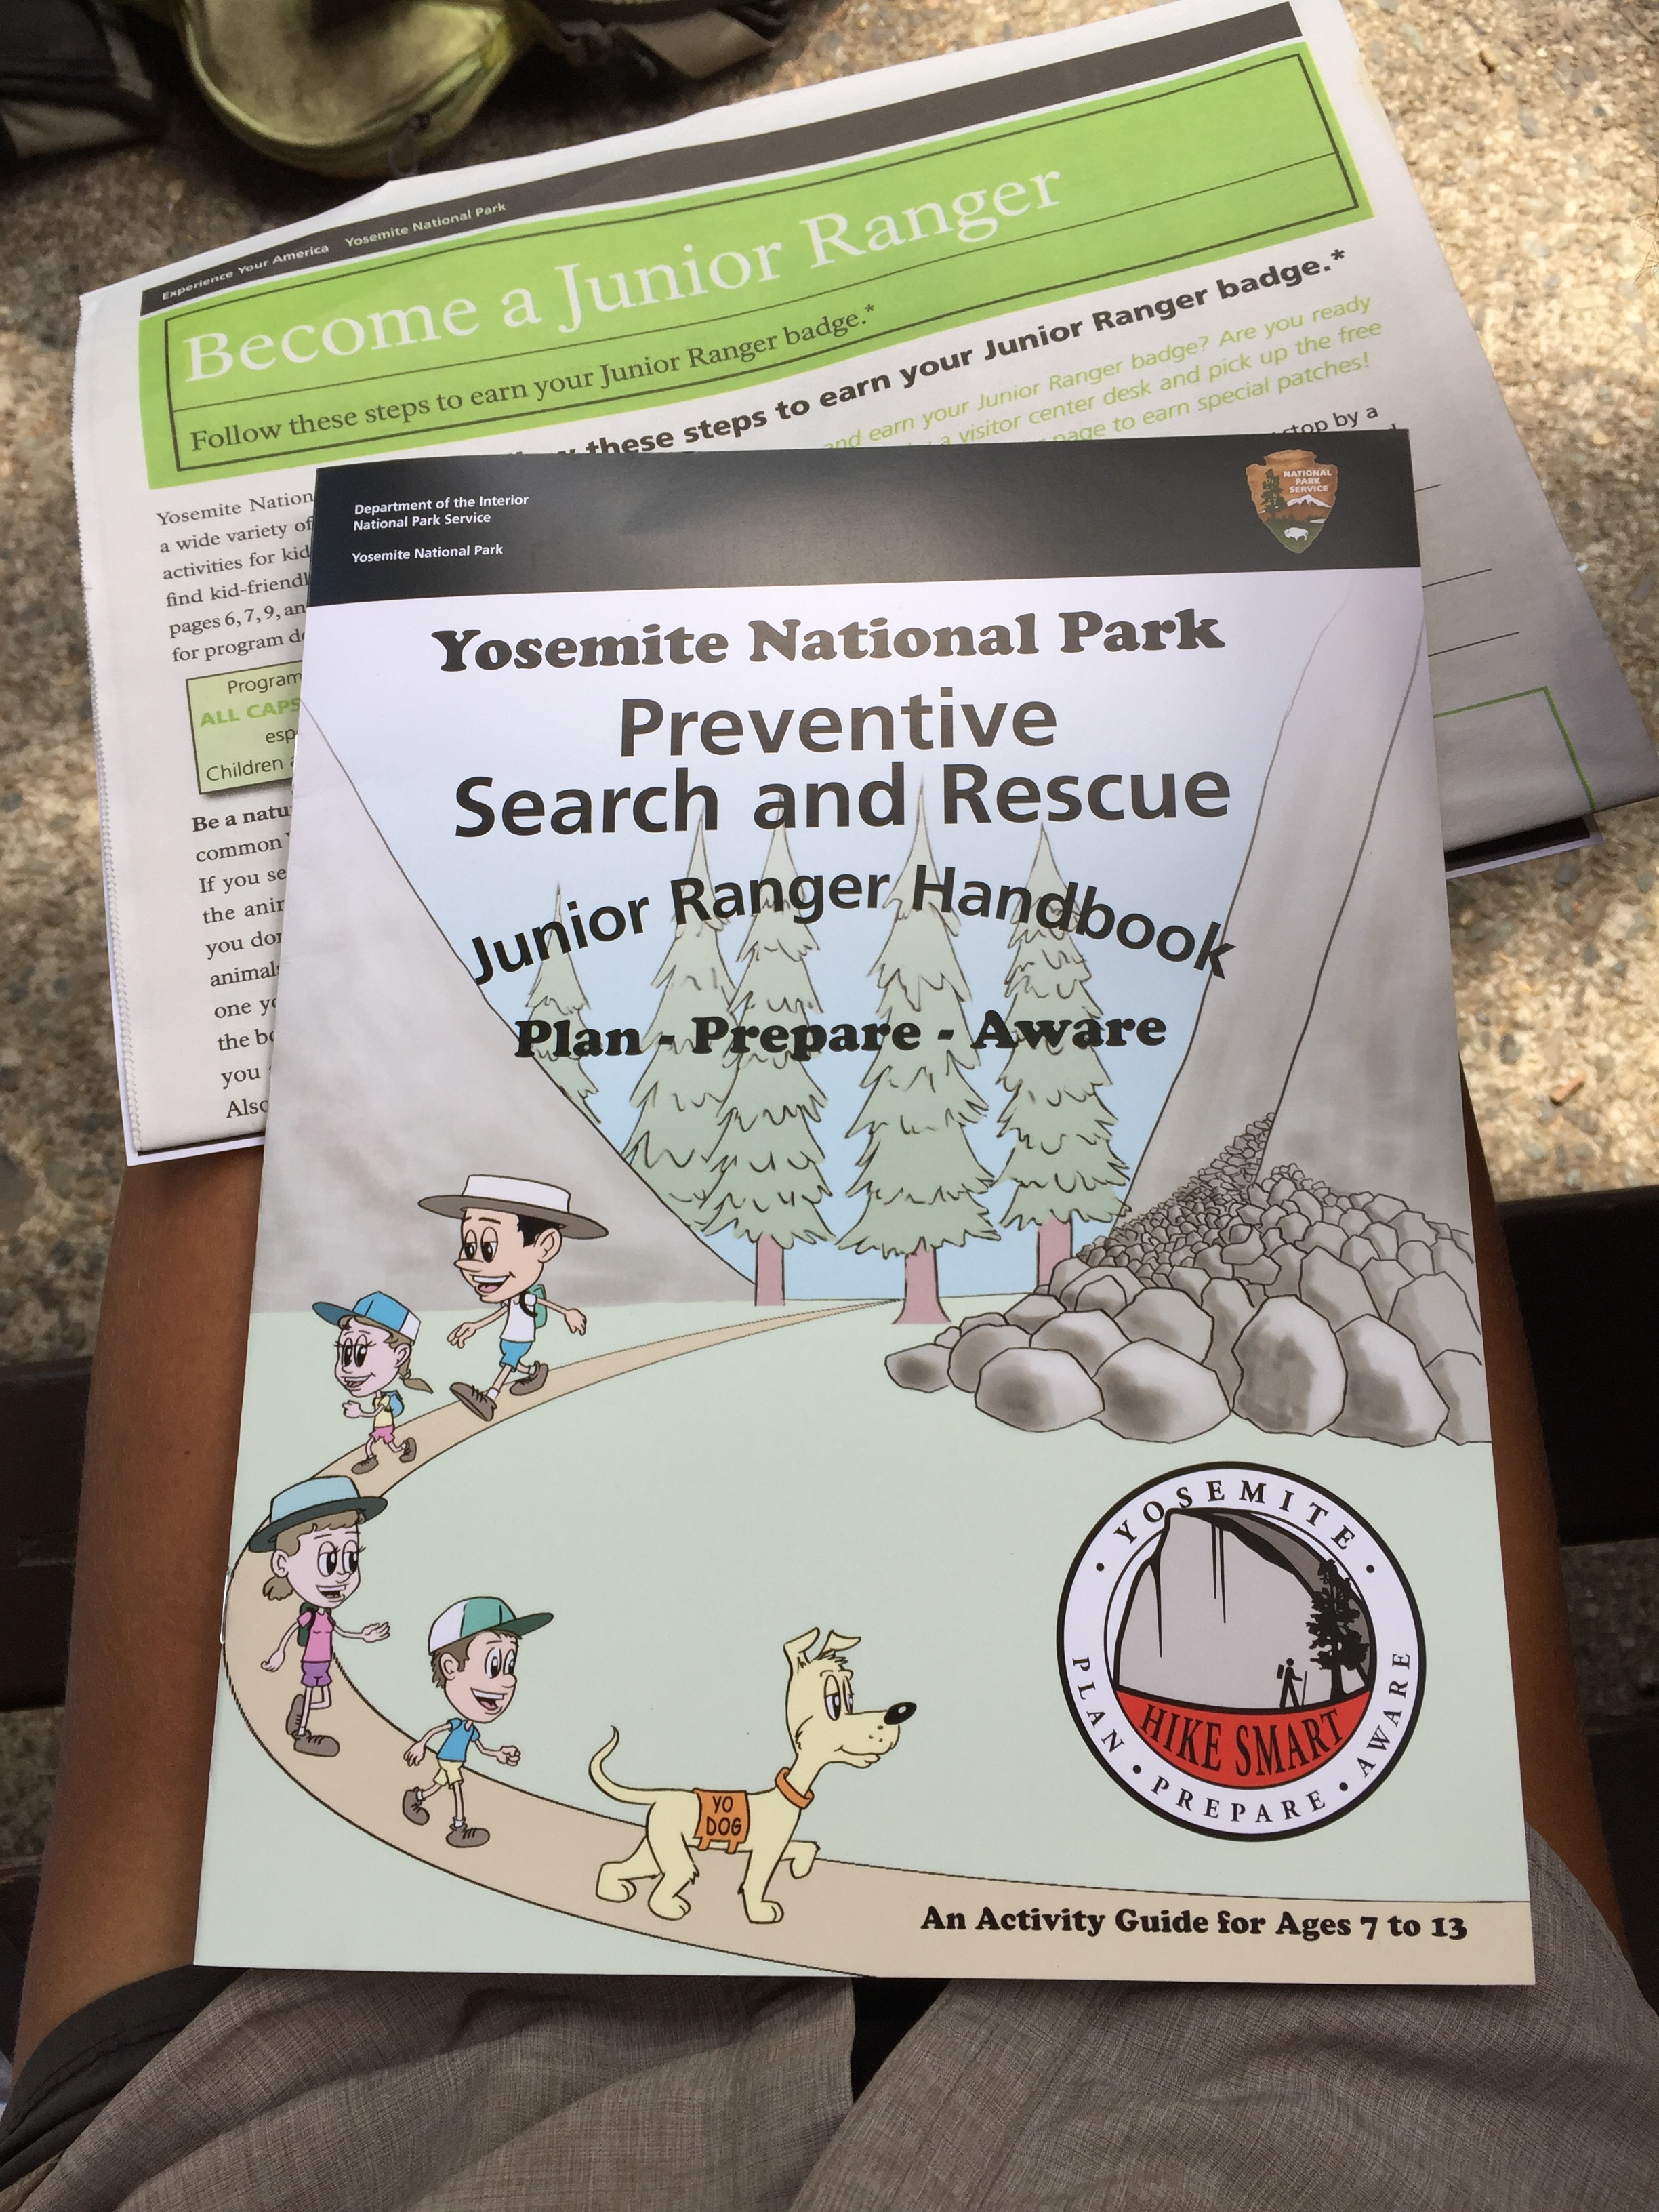 Pathway to becoming a Junior Ranger of Yosemite National Park